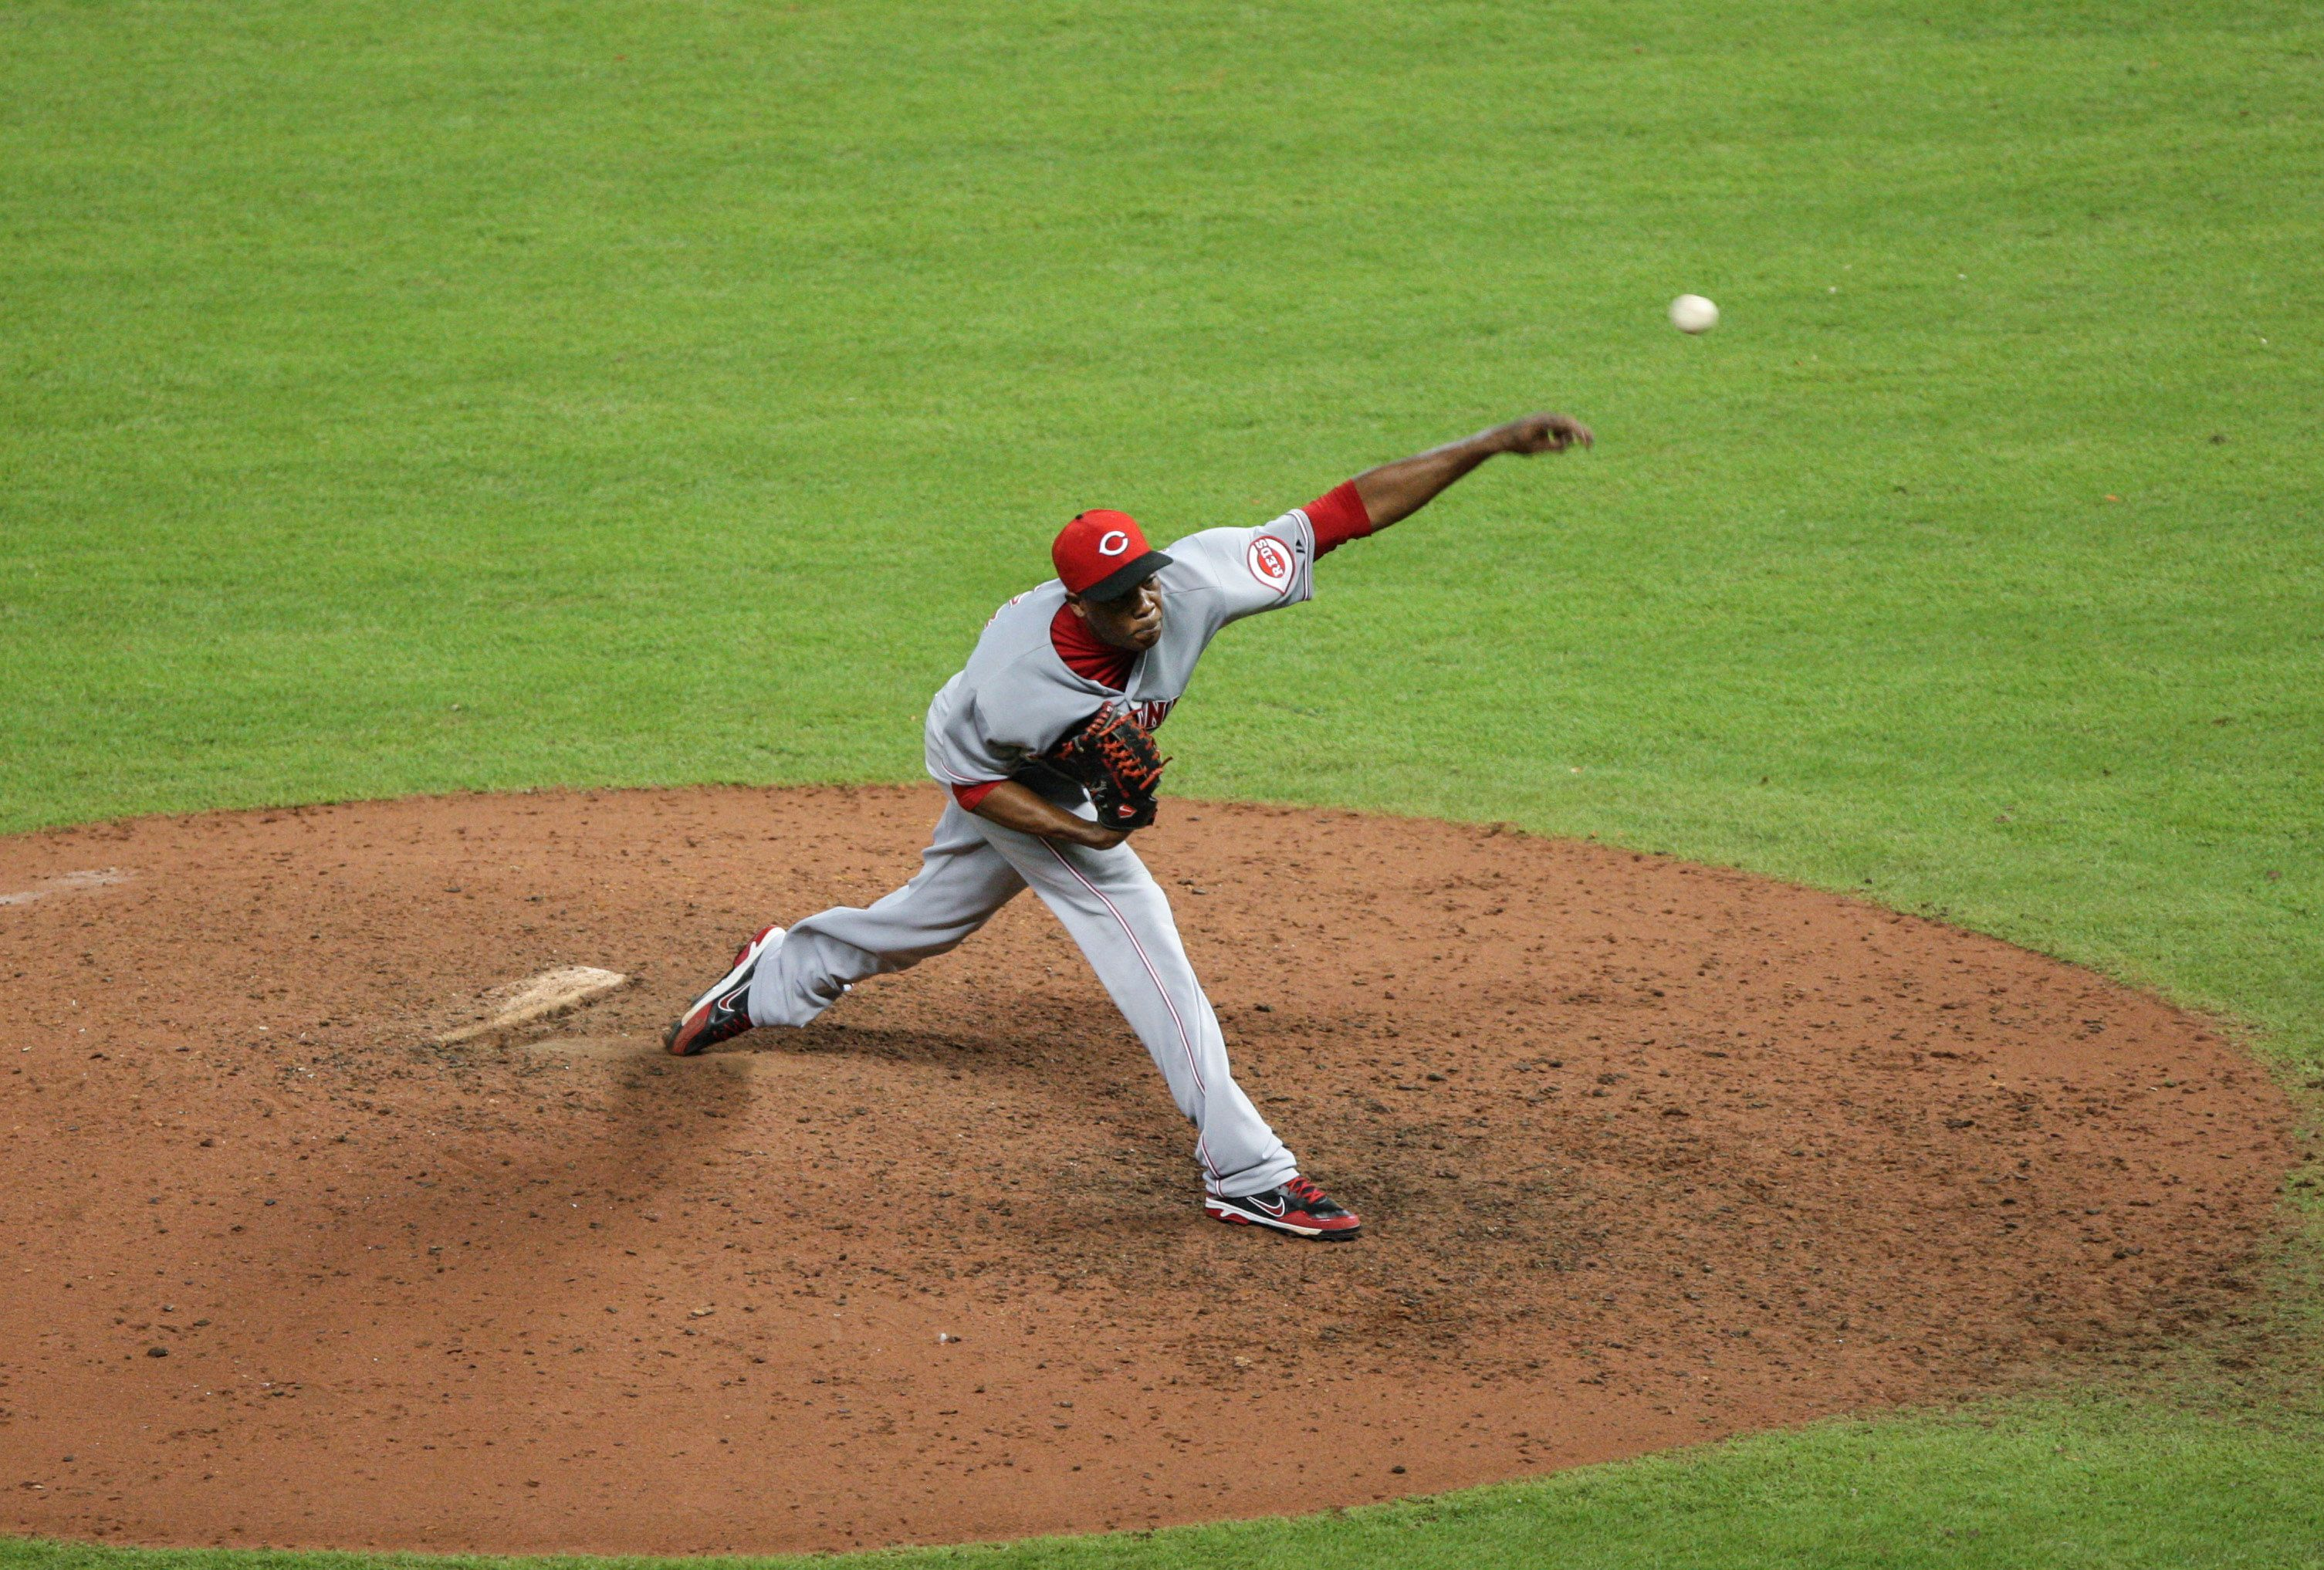 CrowdCam Hot Shot: Cincinnati Reds relief pitcher Aroldis Chapman pitches during the thirteenth inning against the Houston Astros at Minute Maid Park. Photo by Troy Taormina